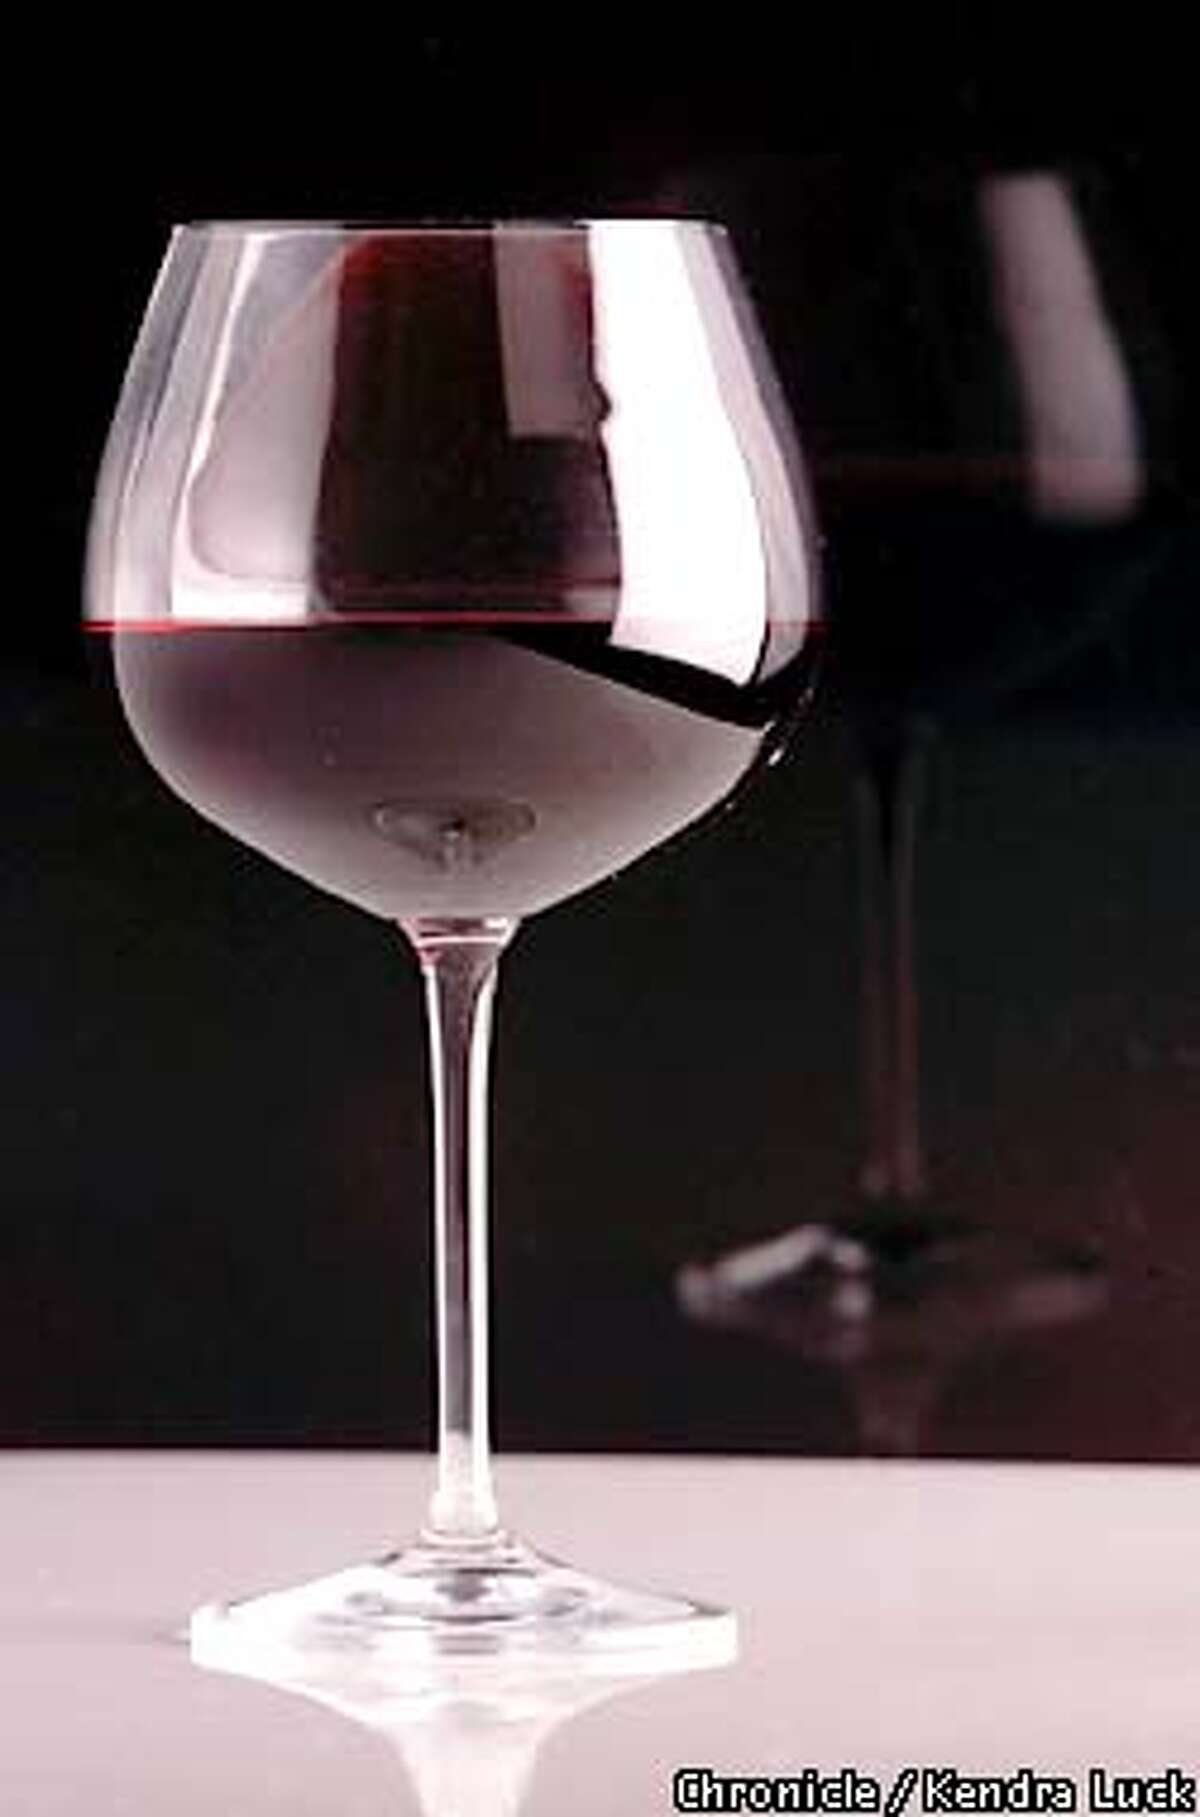 Glass of wine for jump for wine etiquette story. (KENDRA LUCK/SAN FRANCISCO CHRONICLE)